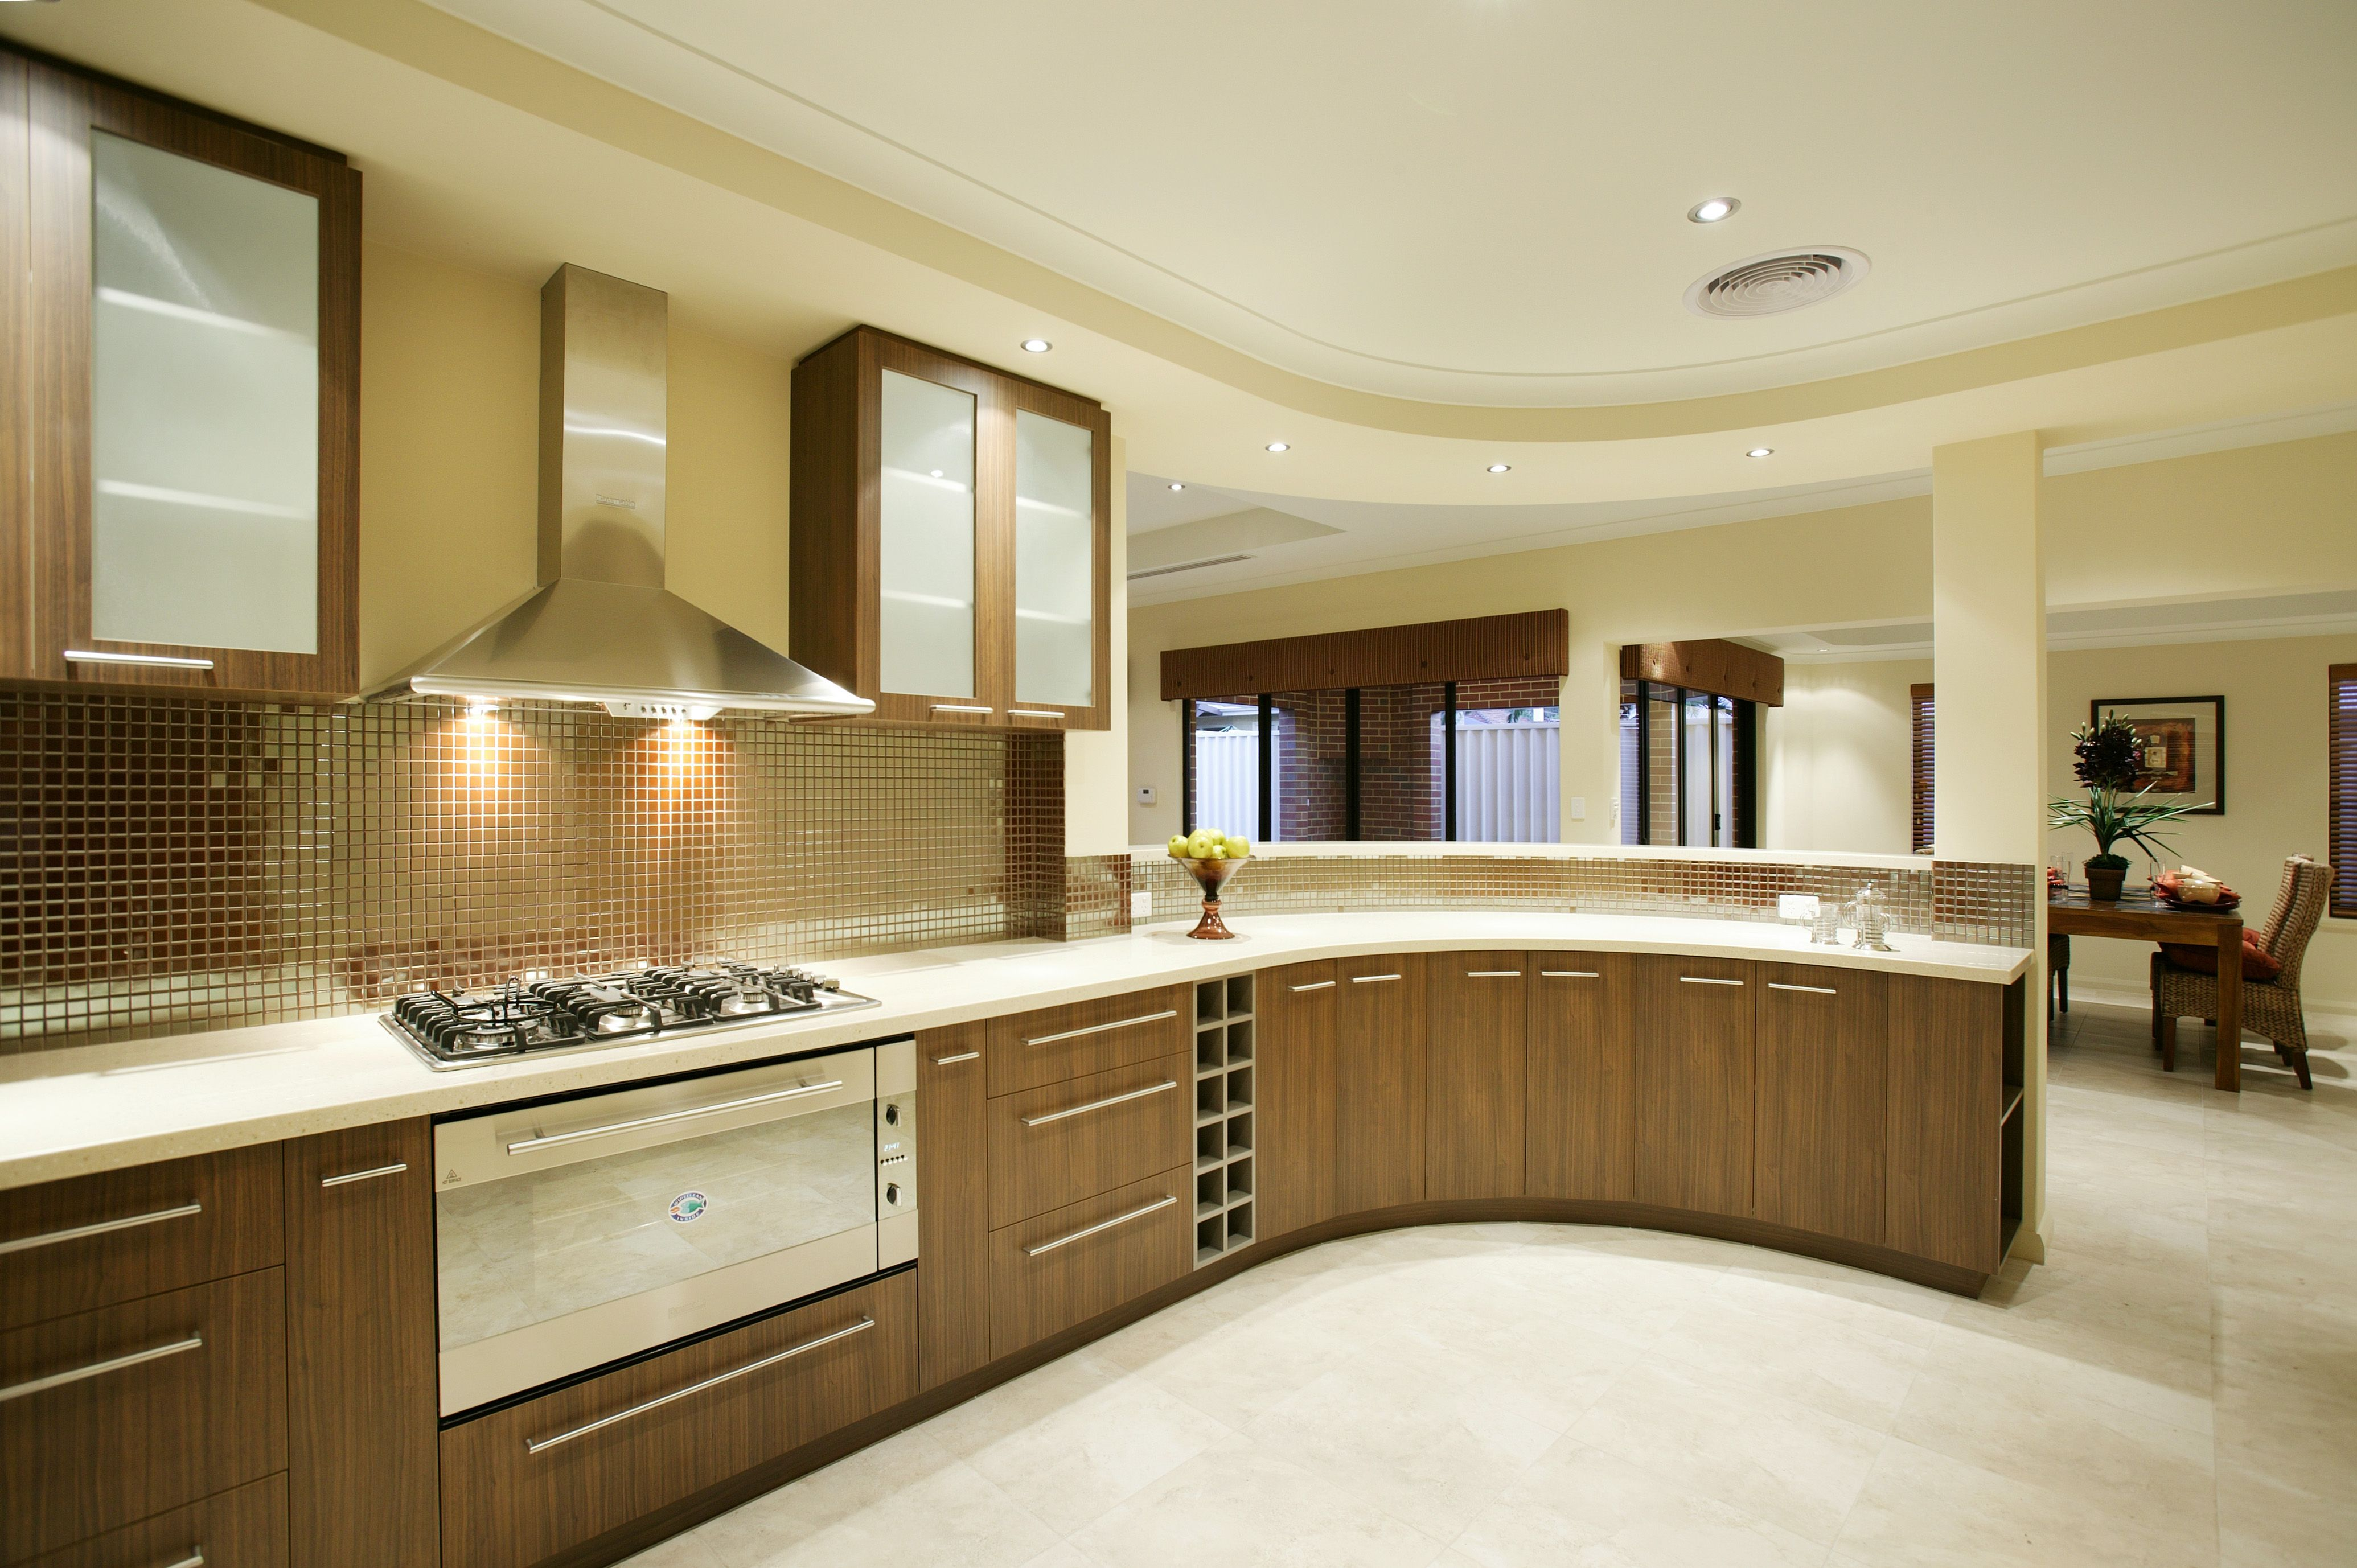 Kitchen Interior Designer Kitchens Home Art Blog 4140x2755px